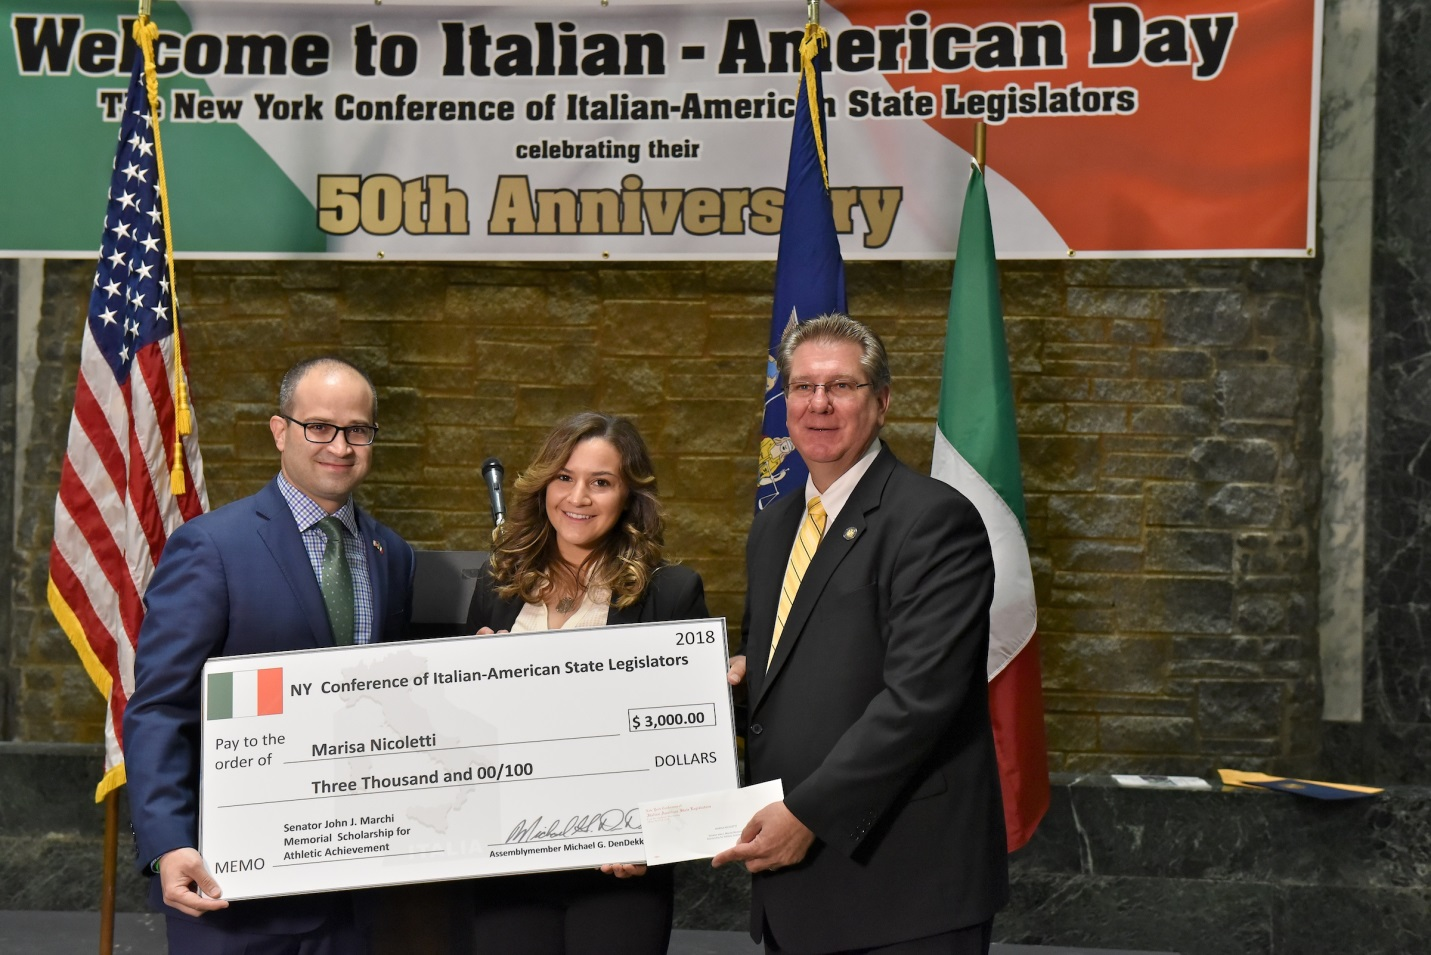 Assemblyman Ed Ra (R-Franklin Square) and Assemblyman Michael DenDekker (D-East Elmhurst) presented Marissa Nicoletti with a check for a $3,000 scholarship from the New York Conference of Italian-Amer